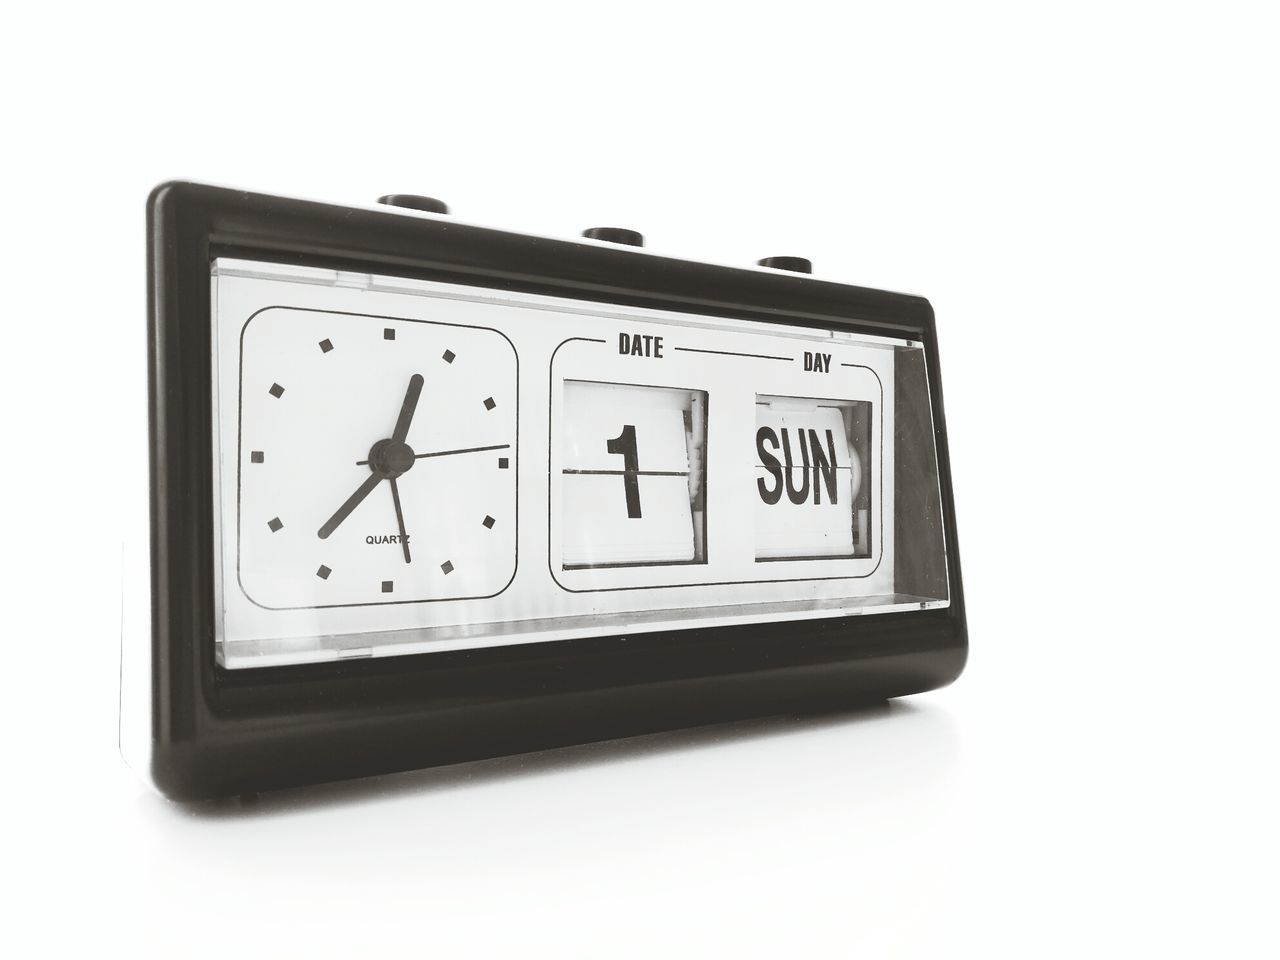 Clock Time Old-fashioned Single Object Alarm Clock Antique White Background Close-up Clock Face Minute Hand Hour Hand Day Times AlarmClock Date Blackandwhite